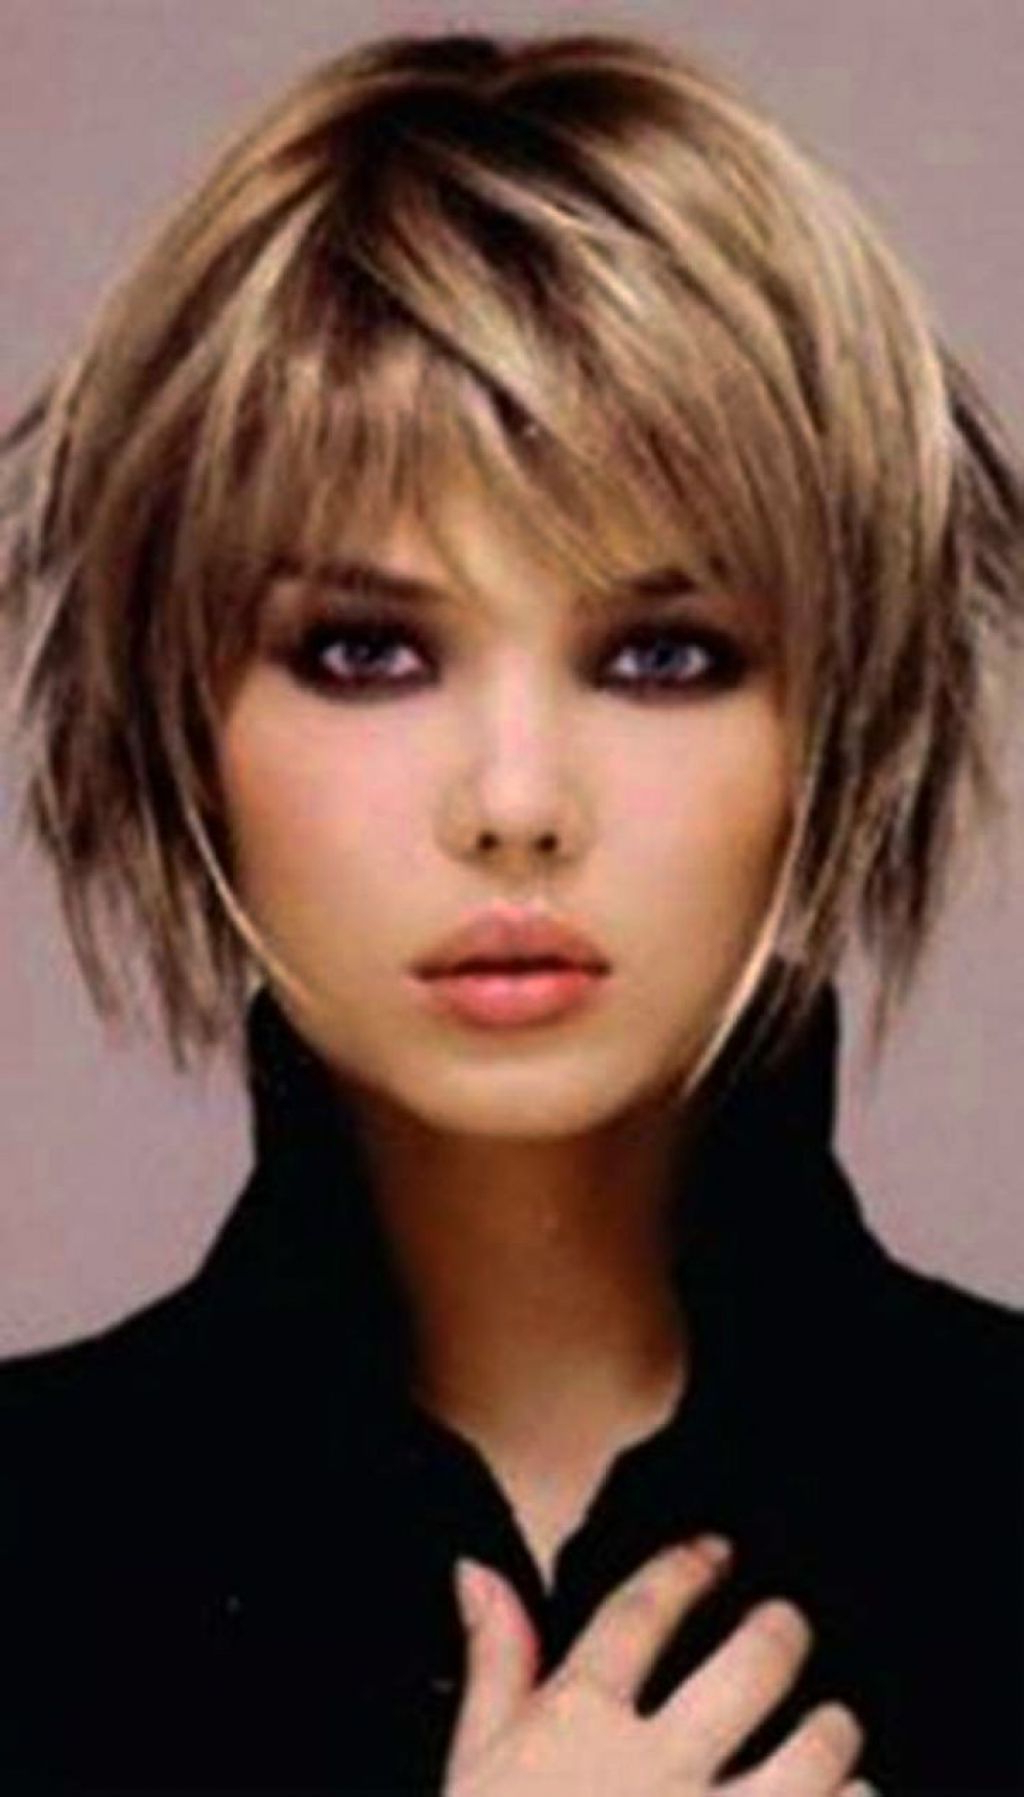 205 Shag Haircuts For Fine Hair | Shaggy Bob Hairstyles Pertaining To Very Short Shaggy Bob Hairstyles (View 2 of 20)